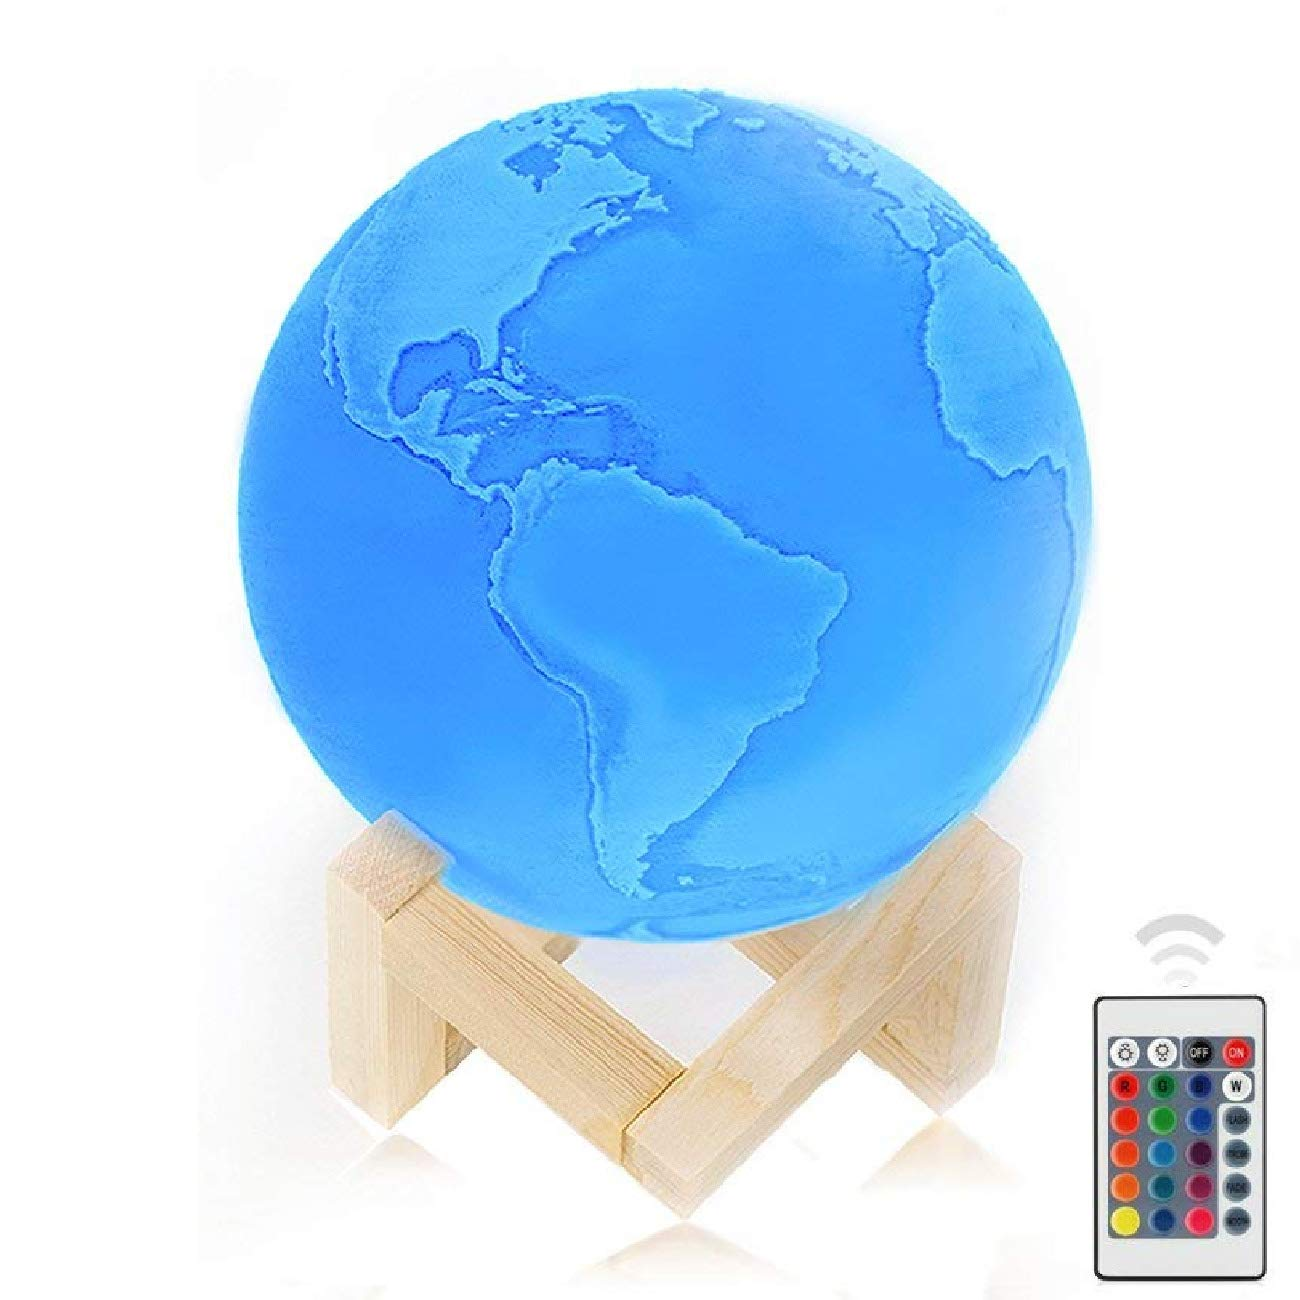 6''Moon Lamp, Genuine Earth Light ! 3D Printed Earth Lamp with Stand, The Earth Night Light with LED 16 Colors, Touch Control and Remote Control.